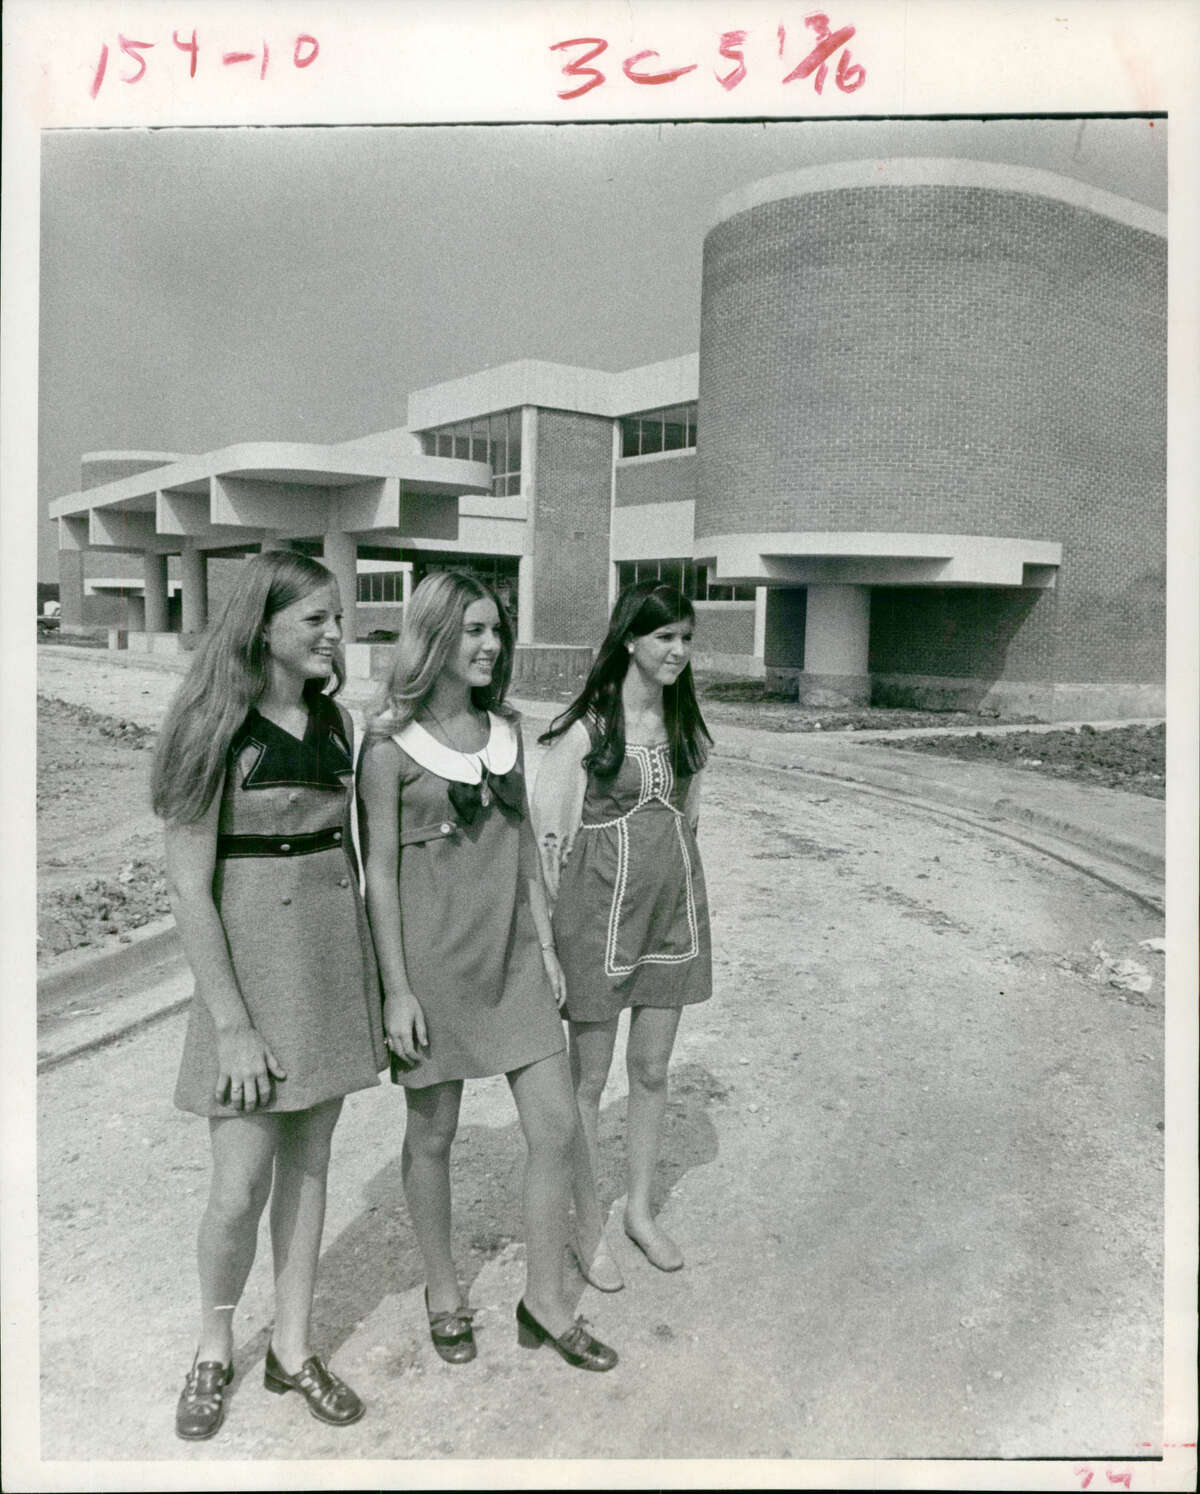 PHOTOS: The early days of SharpstownAug. 16, 1970: New Sharpstown High viewed by transfer students Dee Ann Patrlak, Lynn Portis and Nancy Hastings.